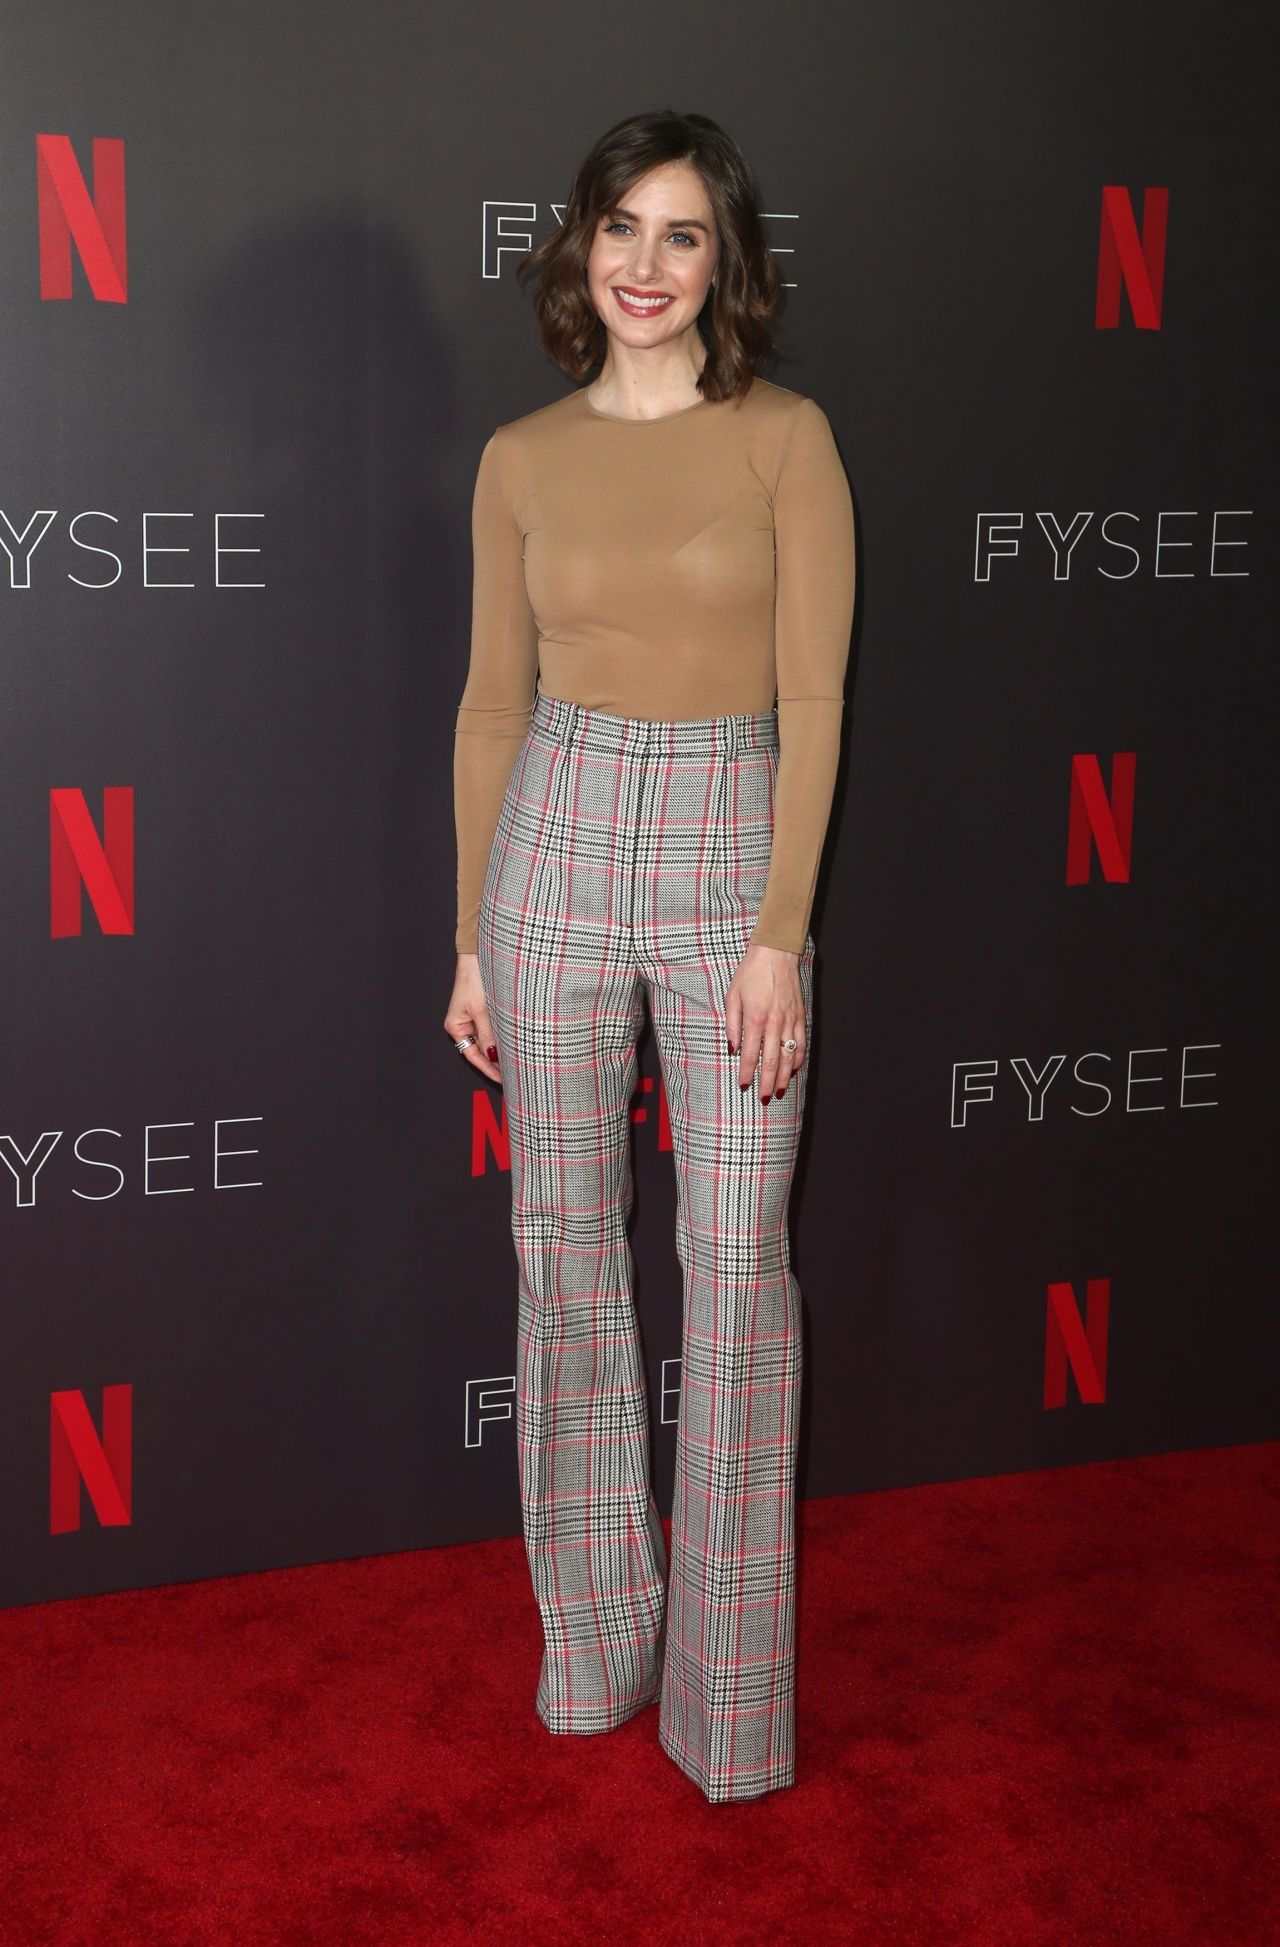 http://celebmafia.com/wp-content/uploads/2018/05/alison-brie-netflix-animation-panel-fysee-event-in-la-05-21-2018-4.jpg